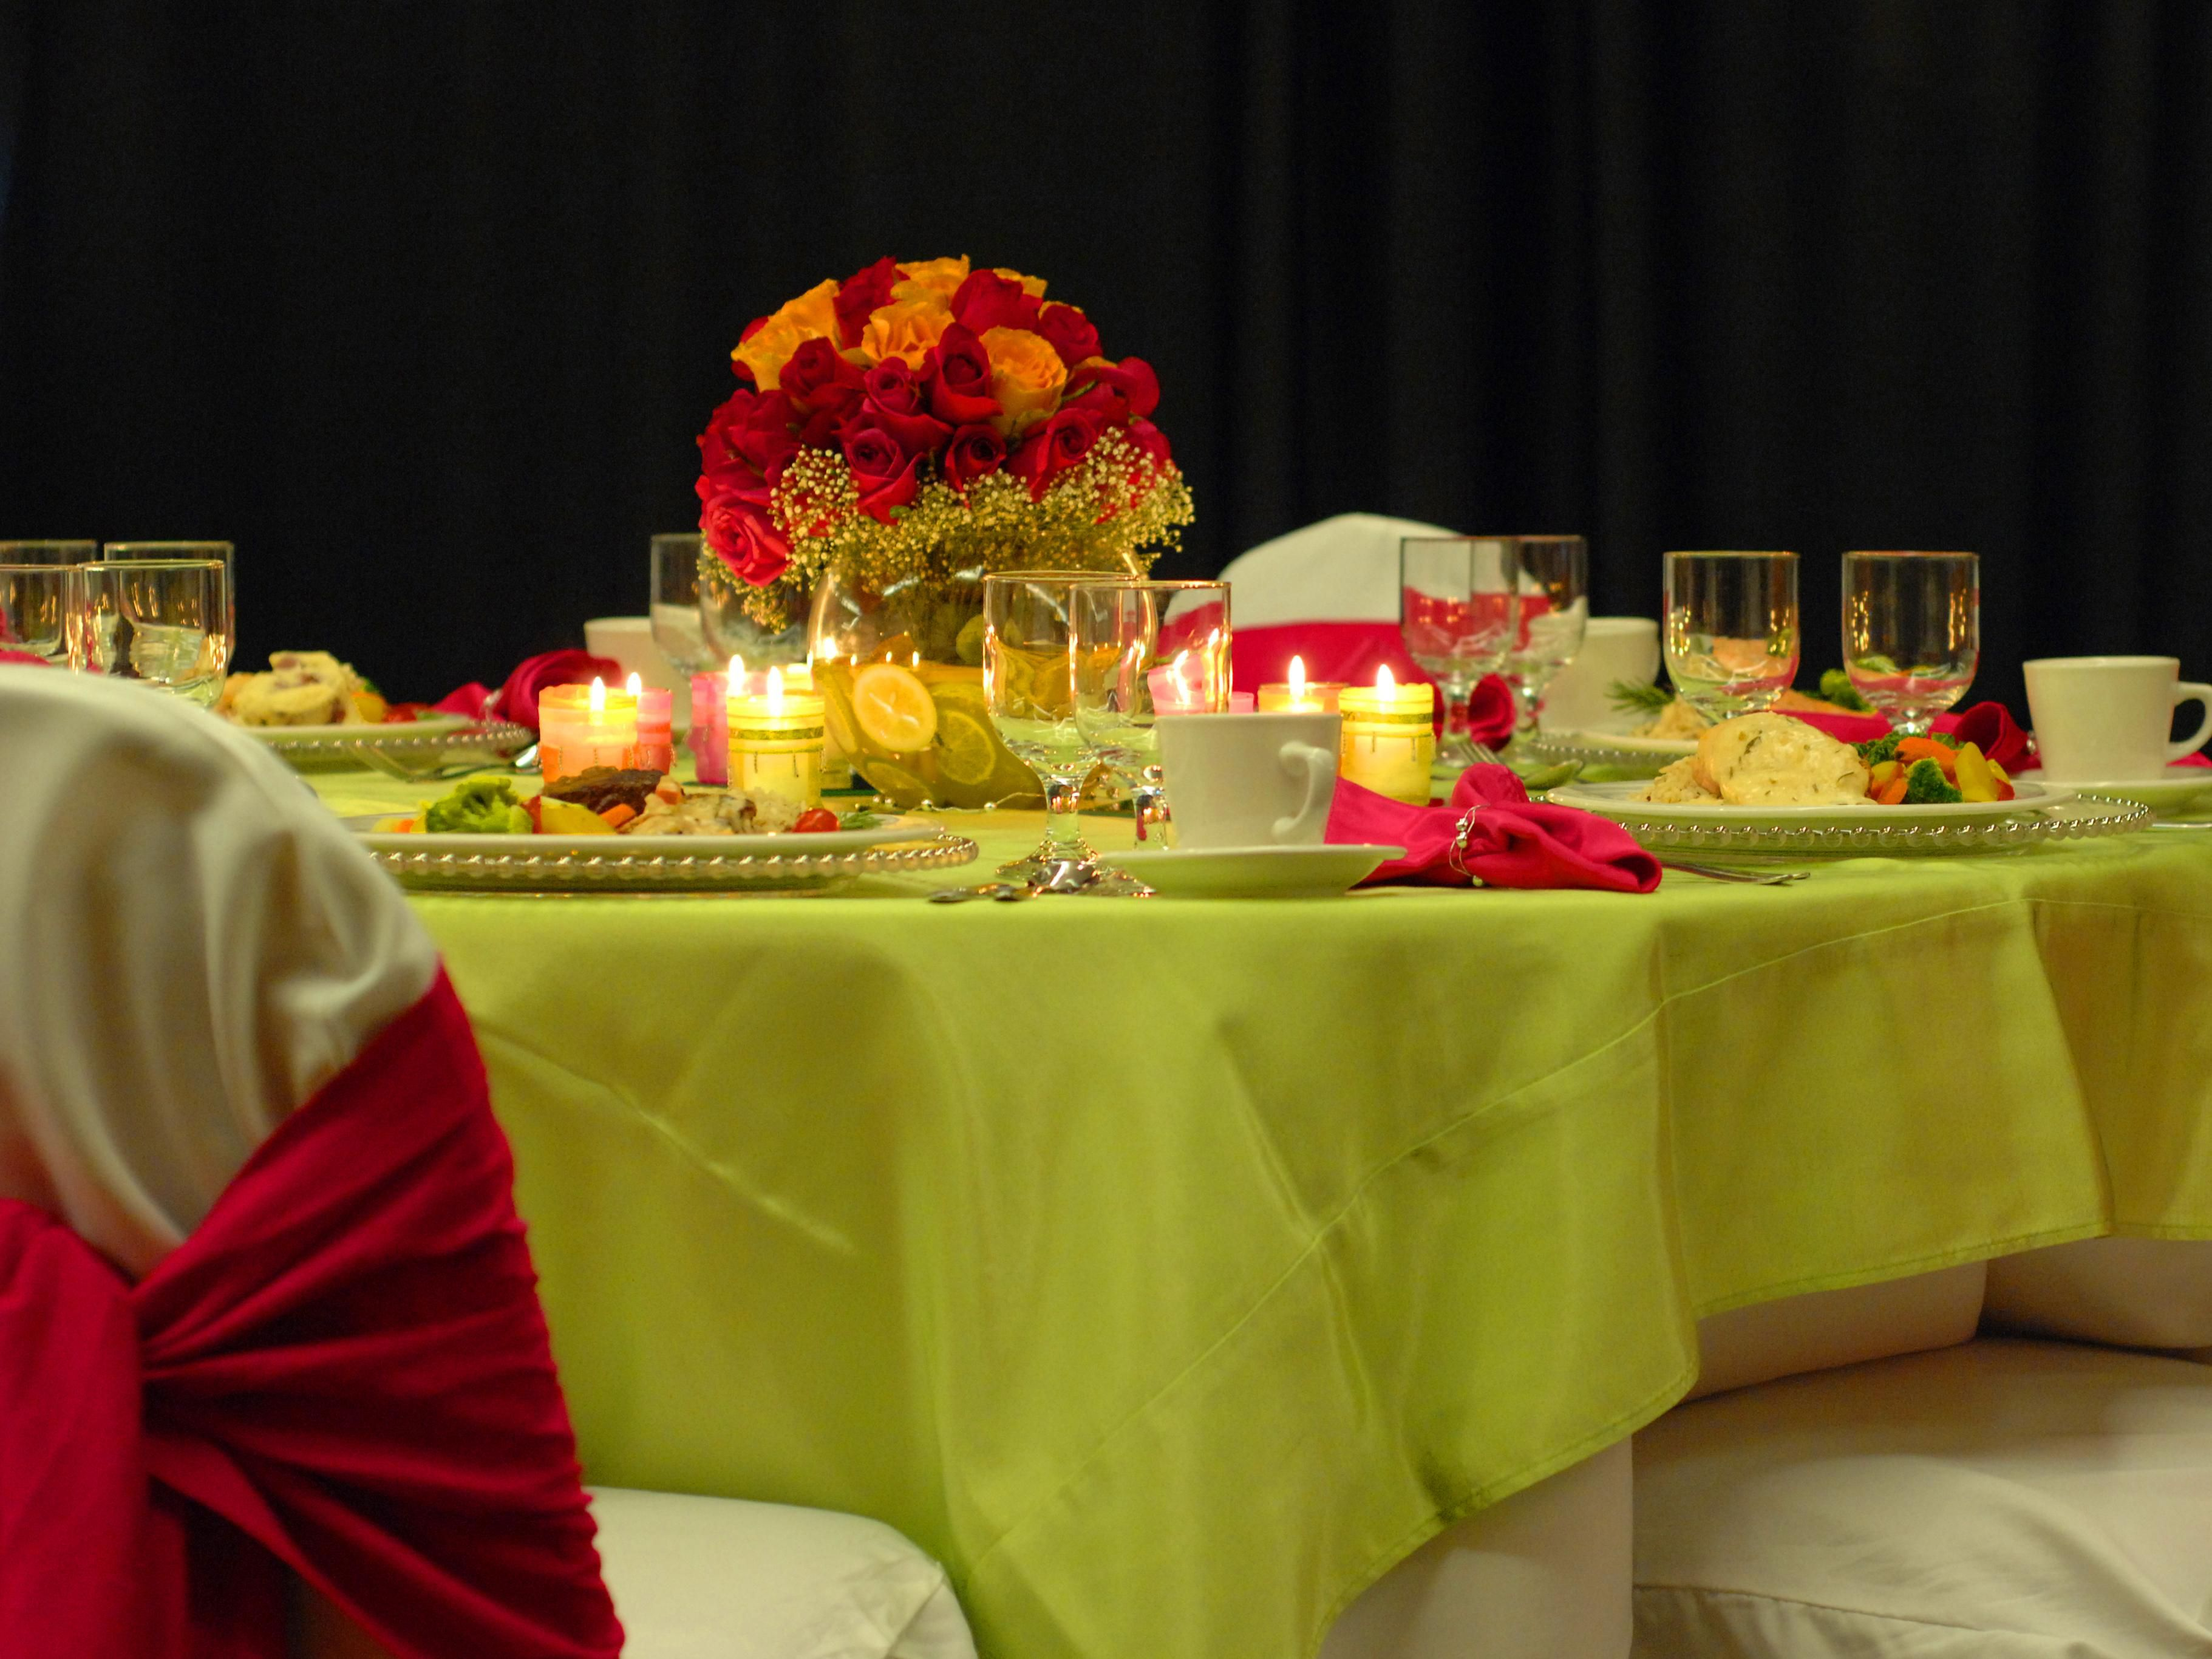 Holiday Inn Catering Feature